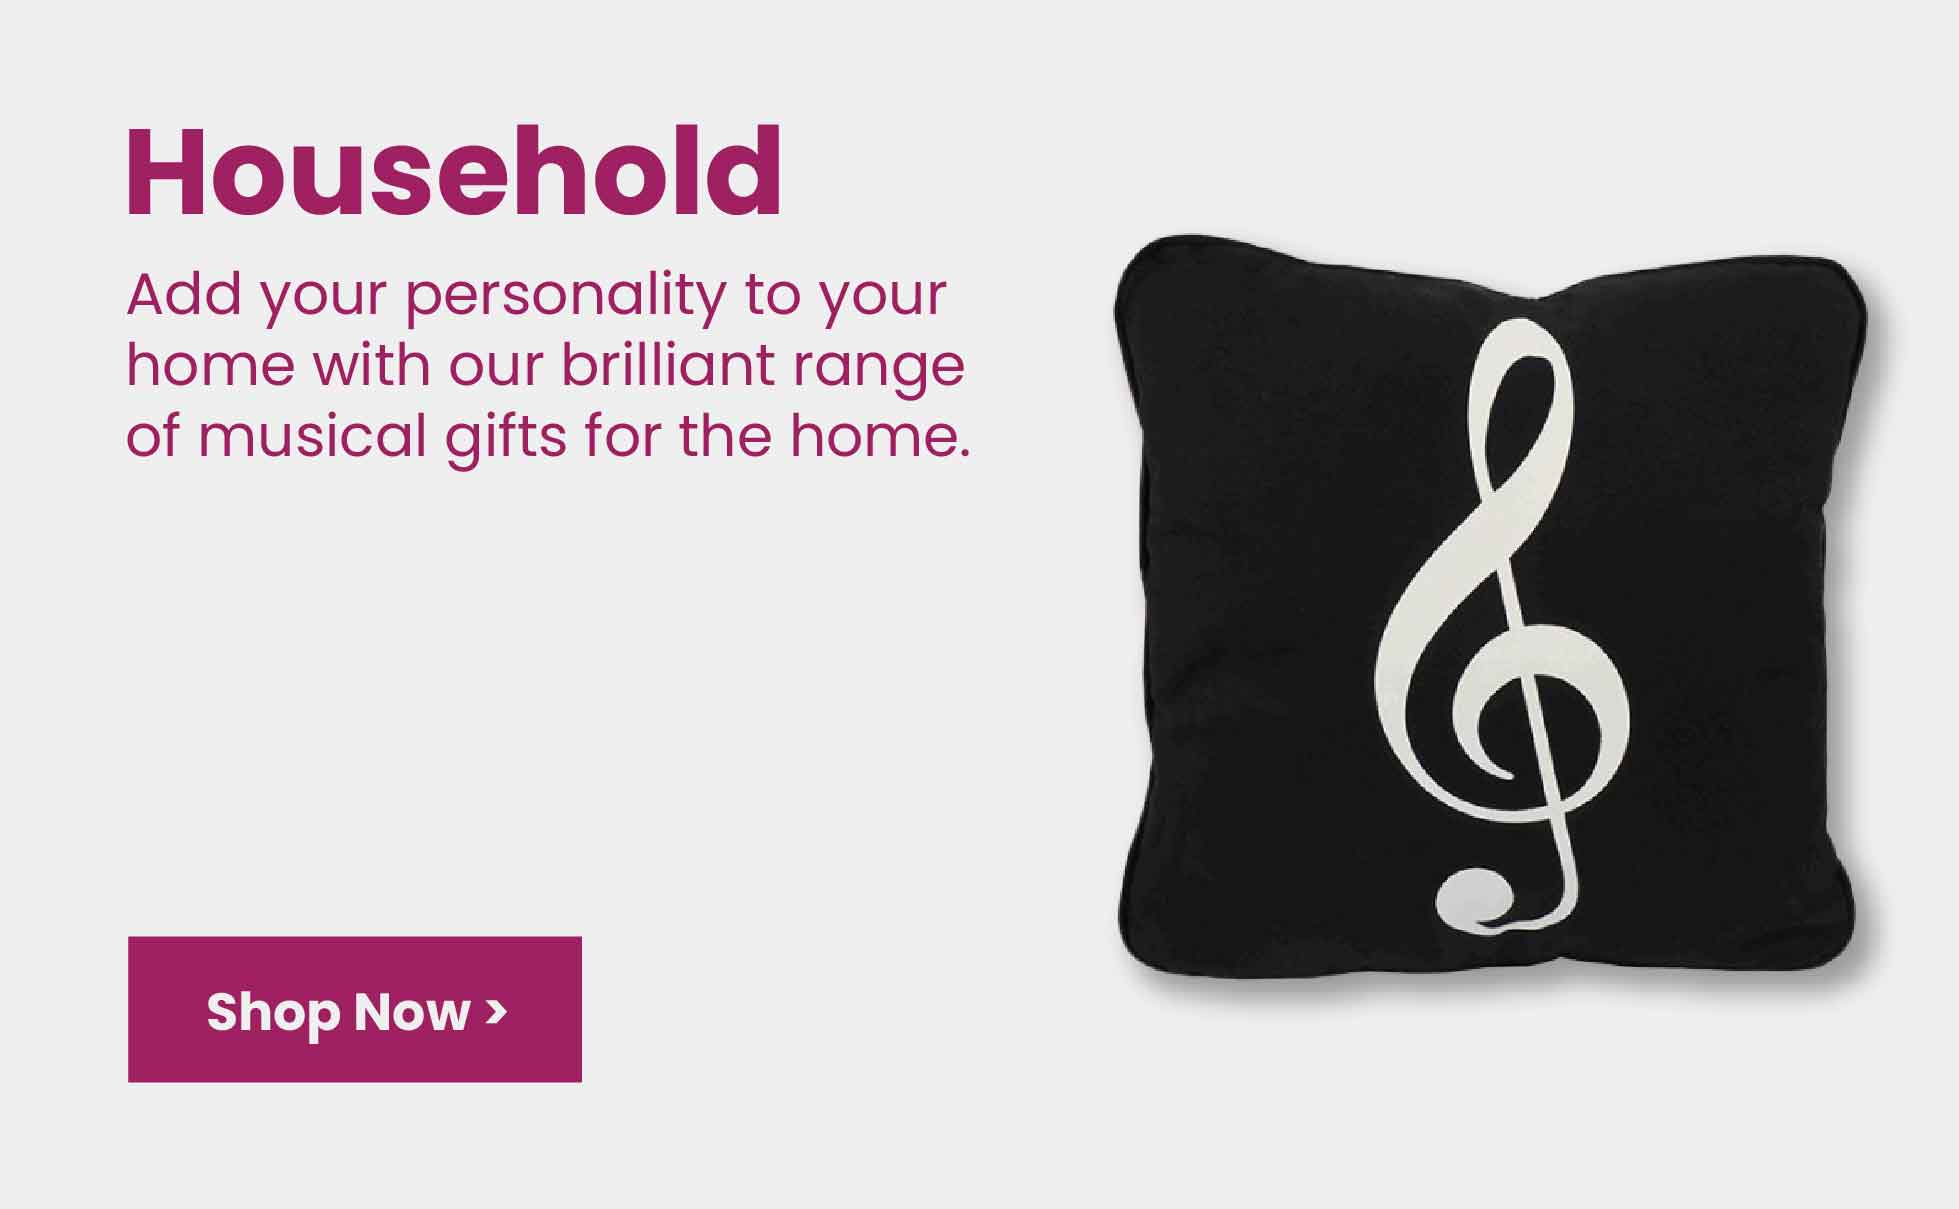 Household musical gifts